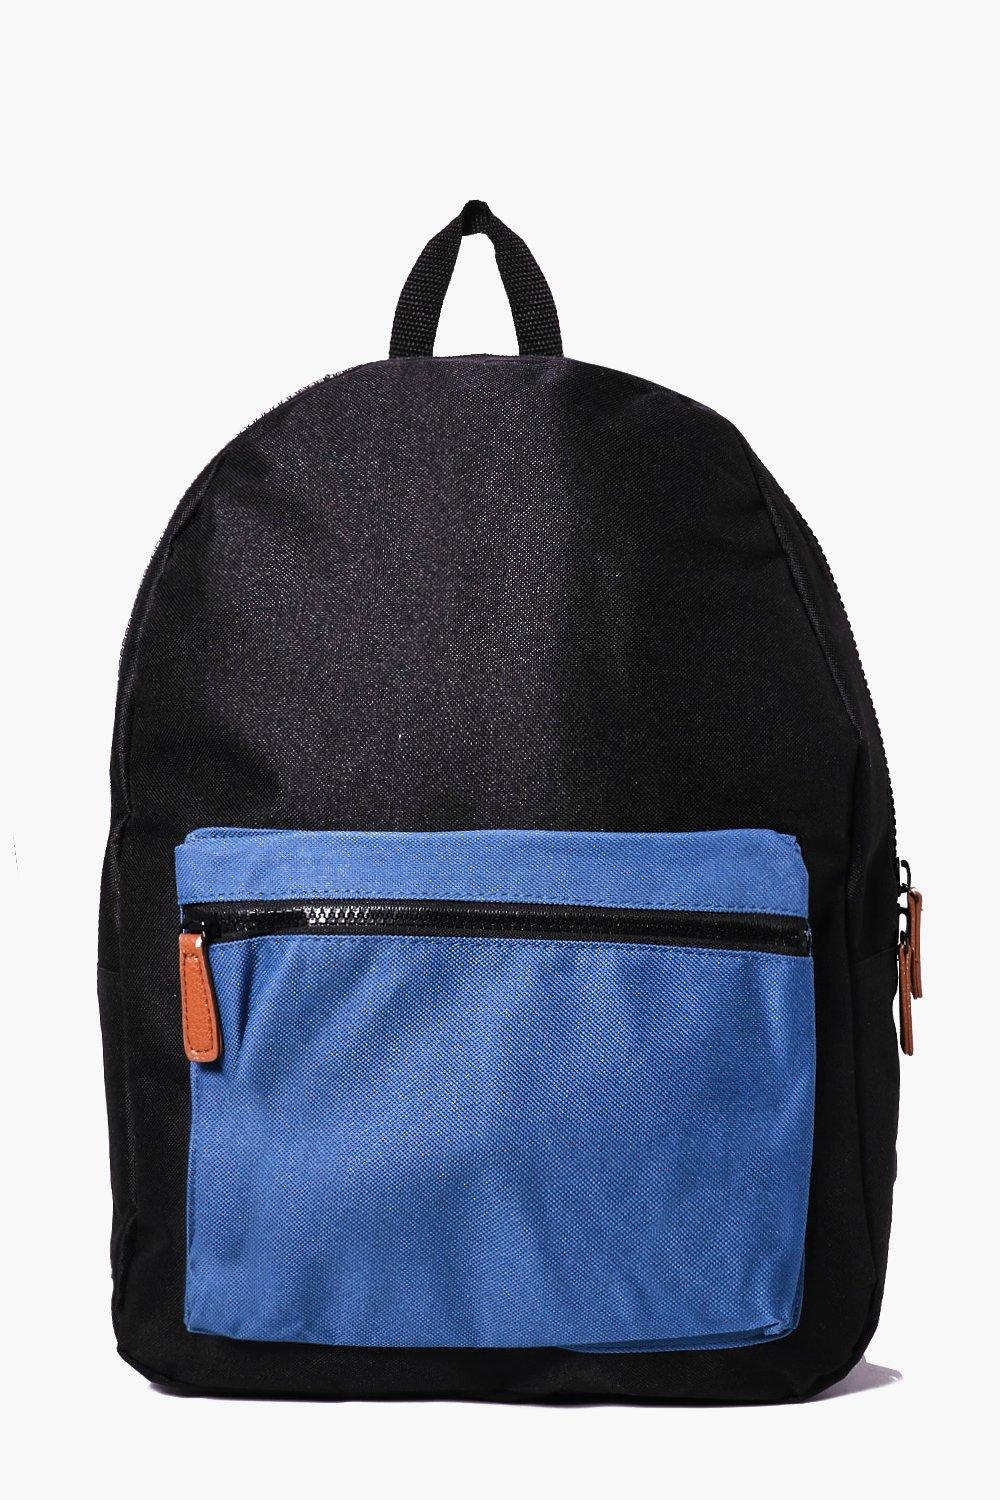 Pocket Backpack - black - Contrast Pocket Backpack